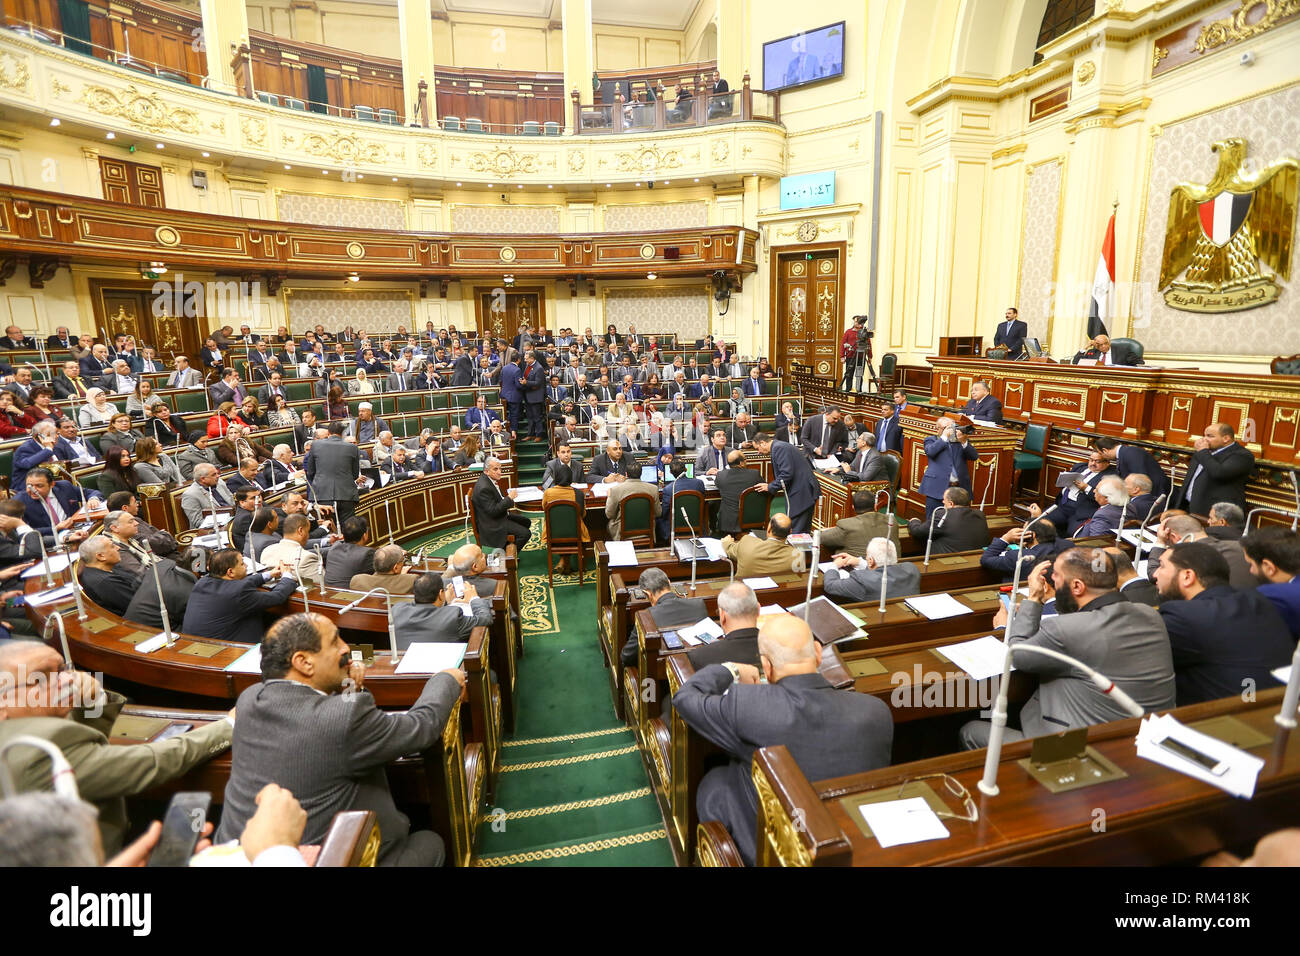 Cairo, Egypt. 13th Feb, 2019. A general view of a plenary seSsion at the Egyptian Parliament held to deliberate the proposed constitutional amendments that will increase the country's President term in office from four to six years. The Parliament members will vote later on the amendments before referring it to the Legislative and Constitutional Affairs Committee to be discussed in detail and to be finalized before being referred to the president to be put up for a public vote in a national referendum. Credit: Lobna Tarek/dpa/Alamy Live News - Stock Image